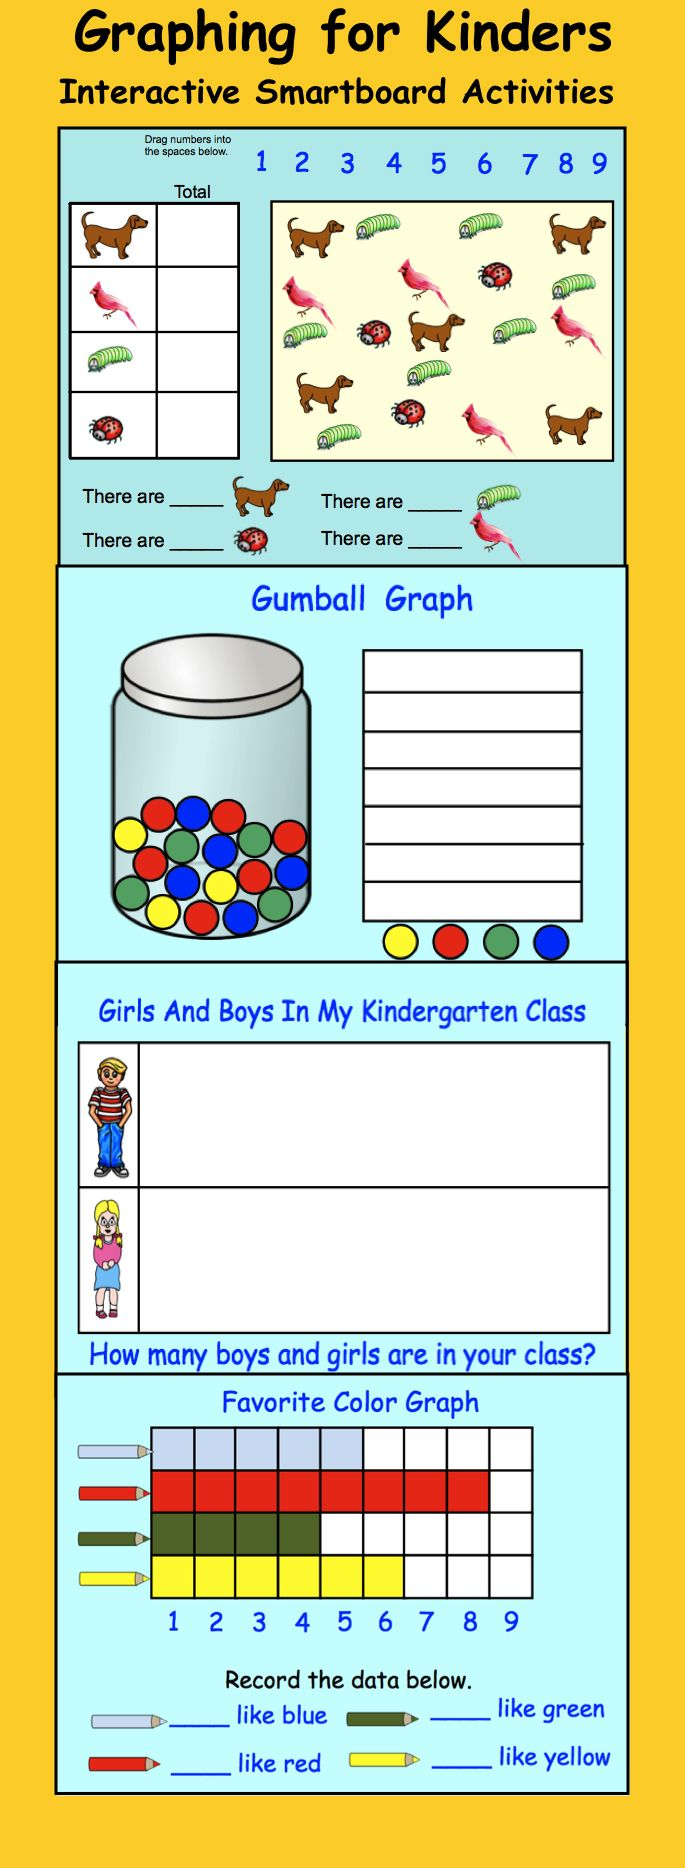 214 best Grade 1 Math images on Pinterest | Preschool, Day care and ...